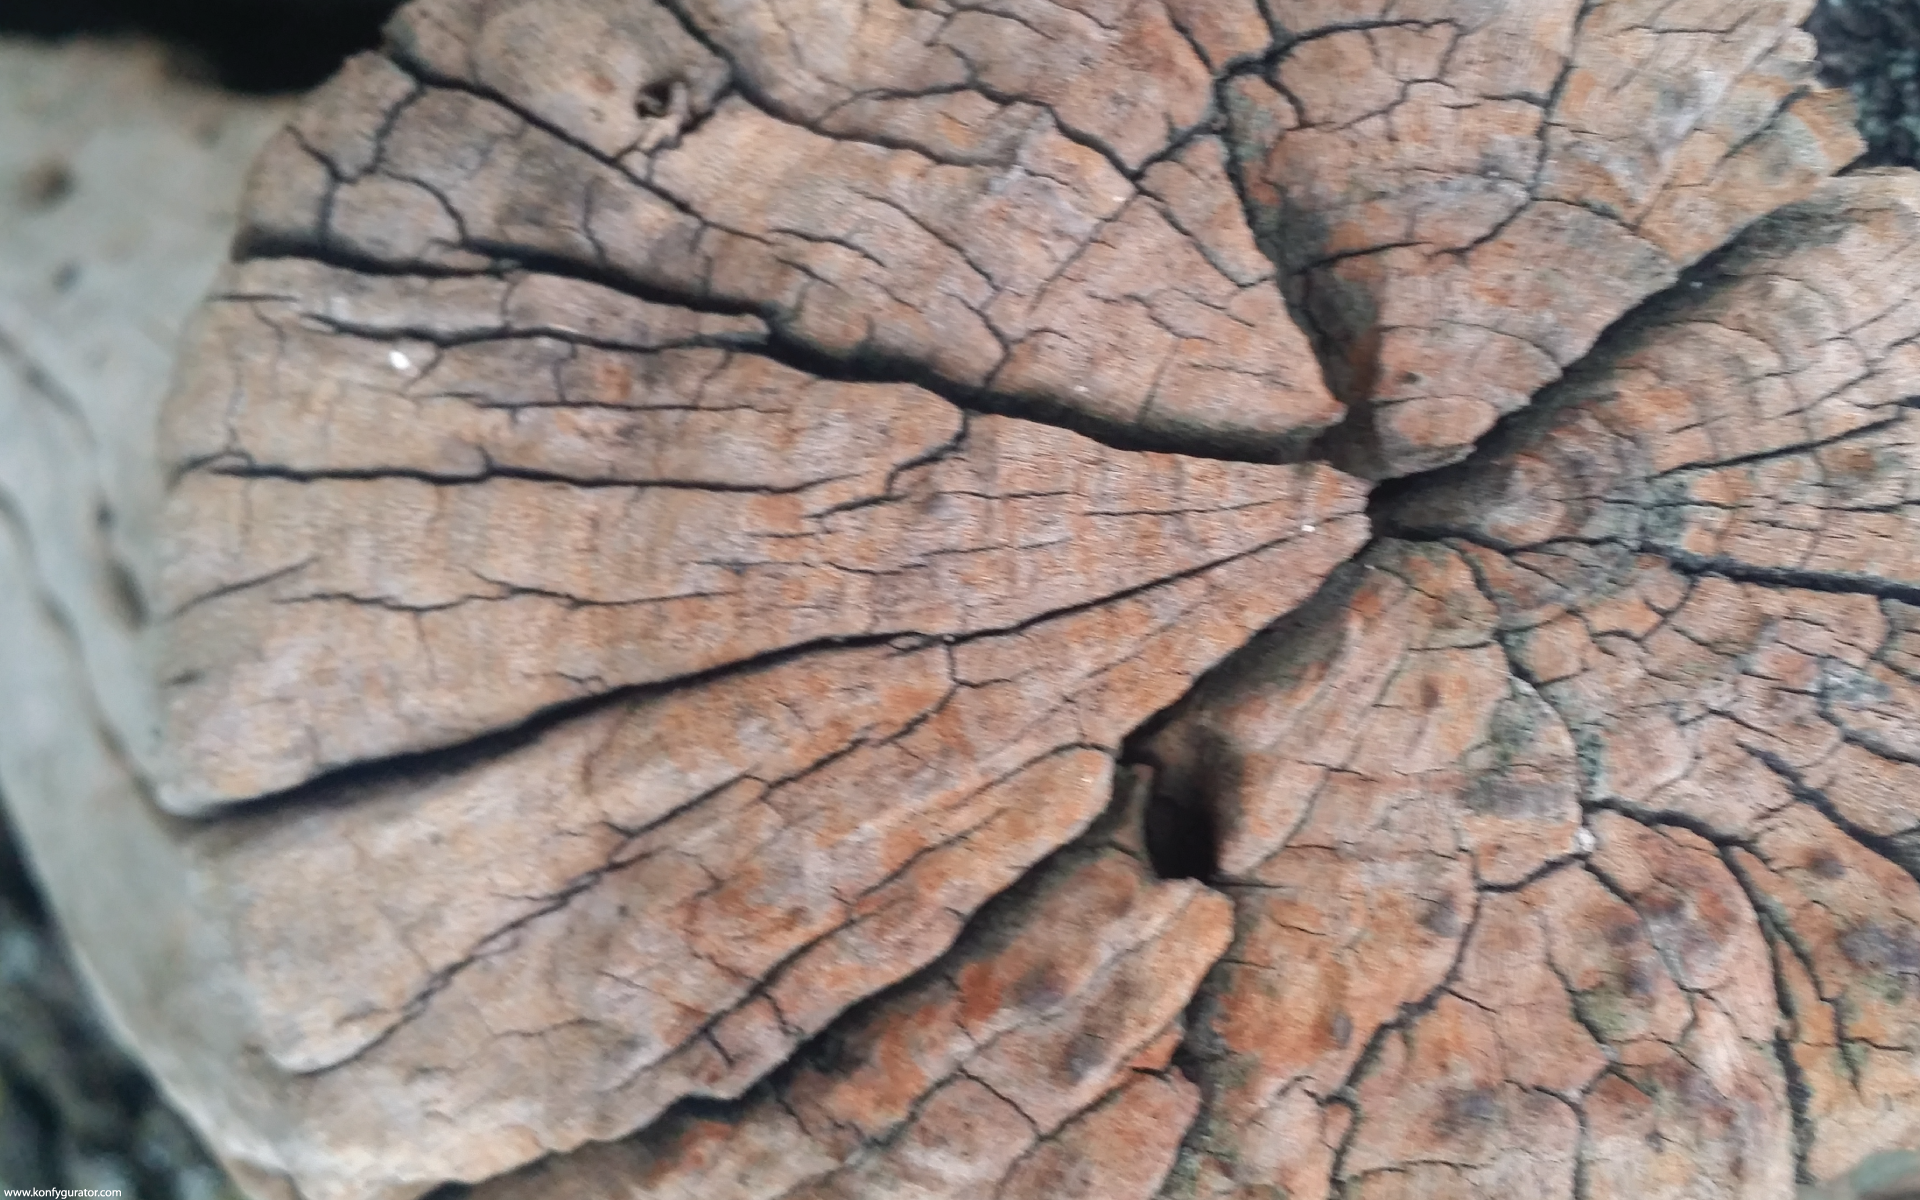 HD Wallpapers - Textures - stump, old, hive, cracked